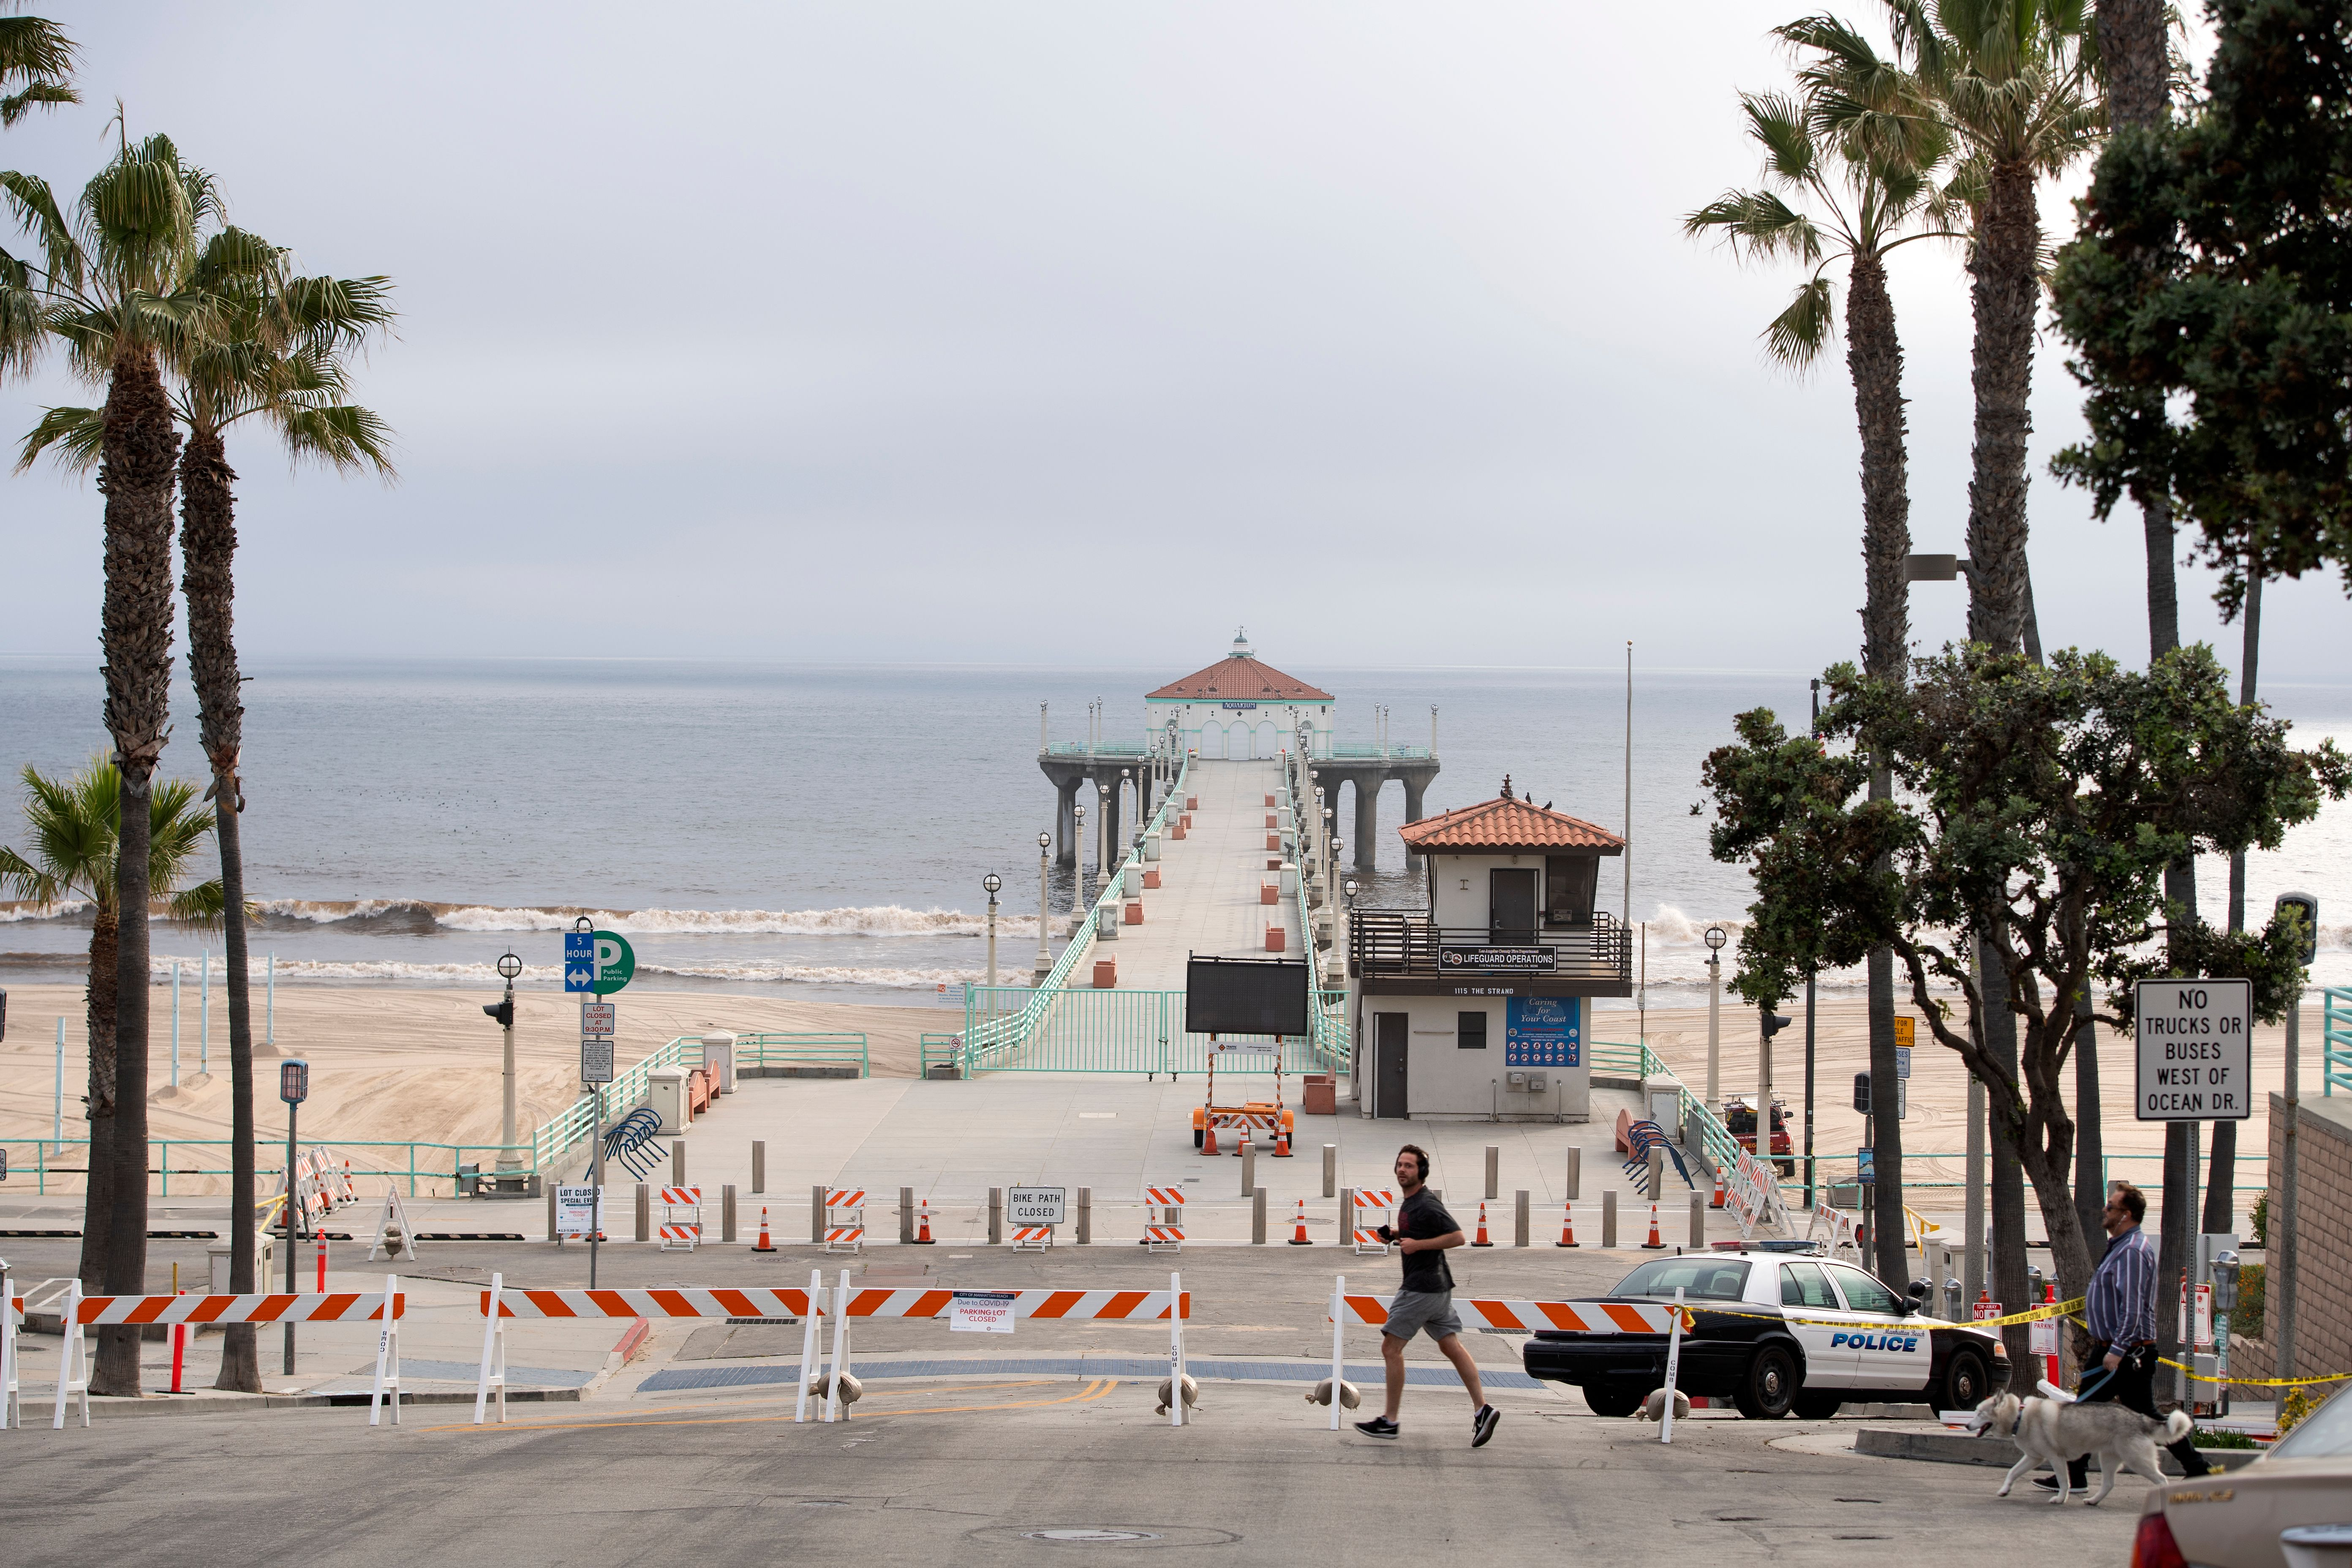 People walk by the closed pier, beach and strand amid the novel coronavirus pandemic on April 28, 2020, in Manhattan Beach, California.(Photo by VALERIE MACON/AFP via Getty Images)